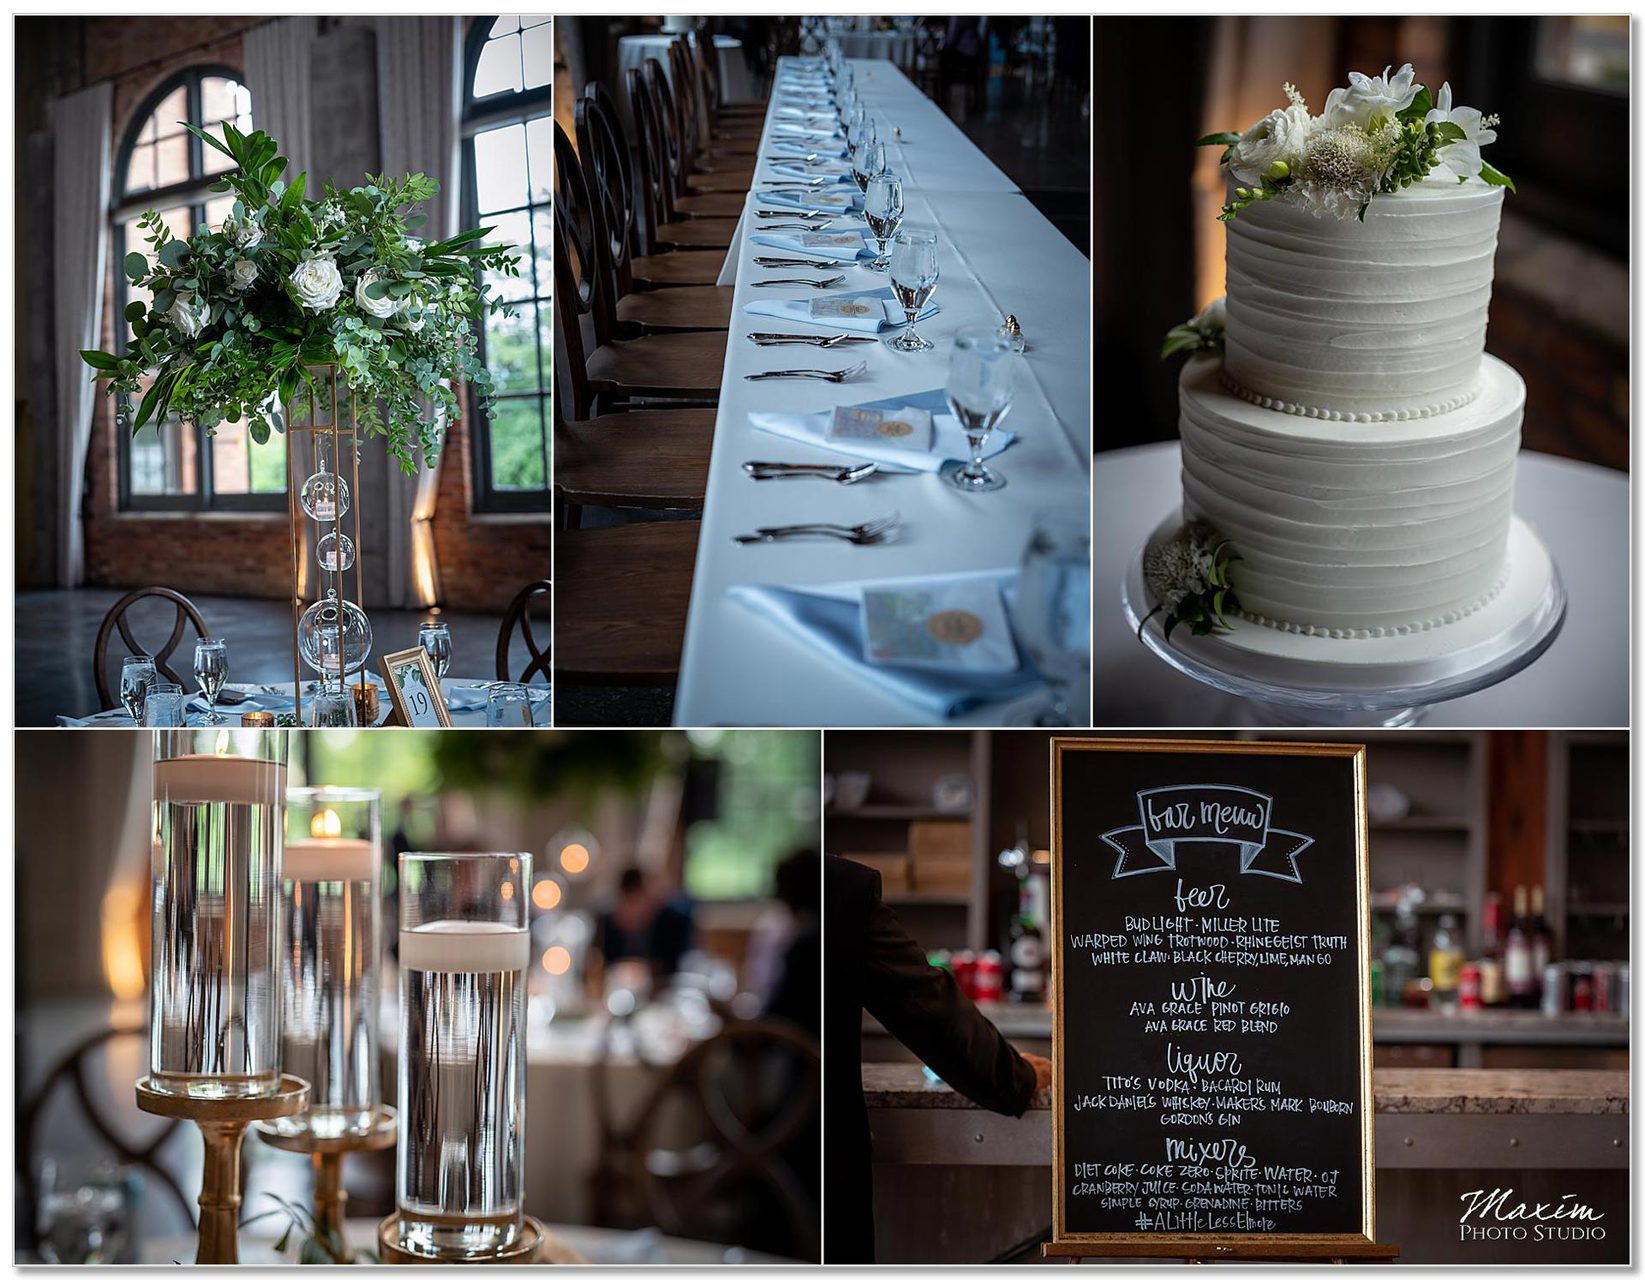 The Steam Plant Wedding Decor